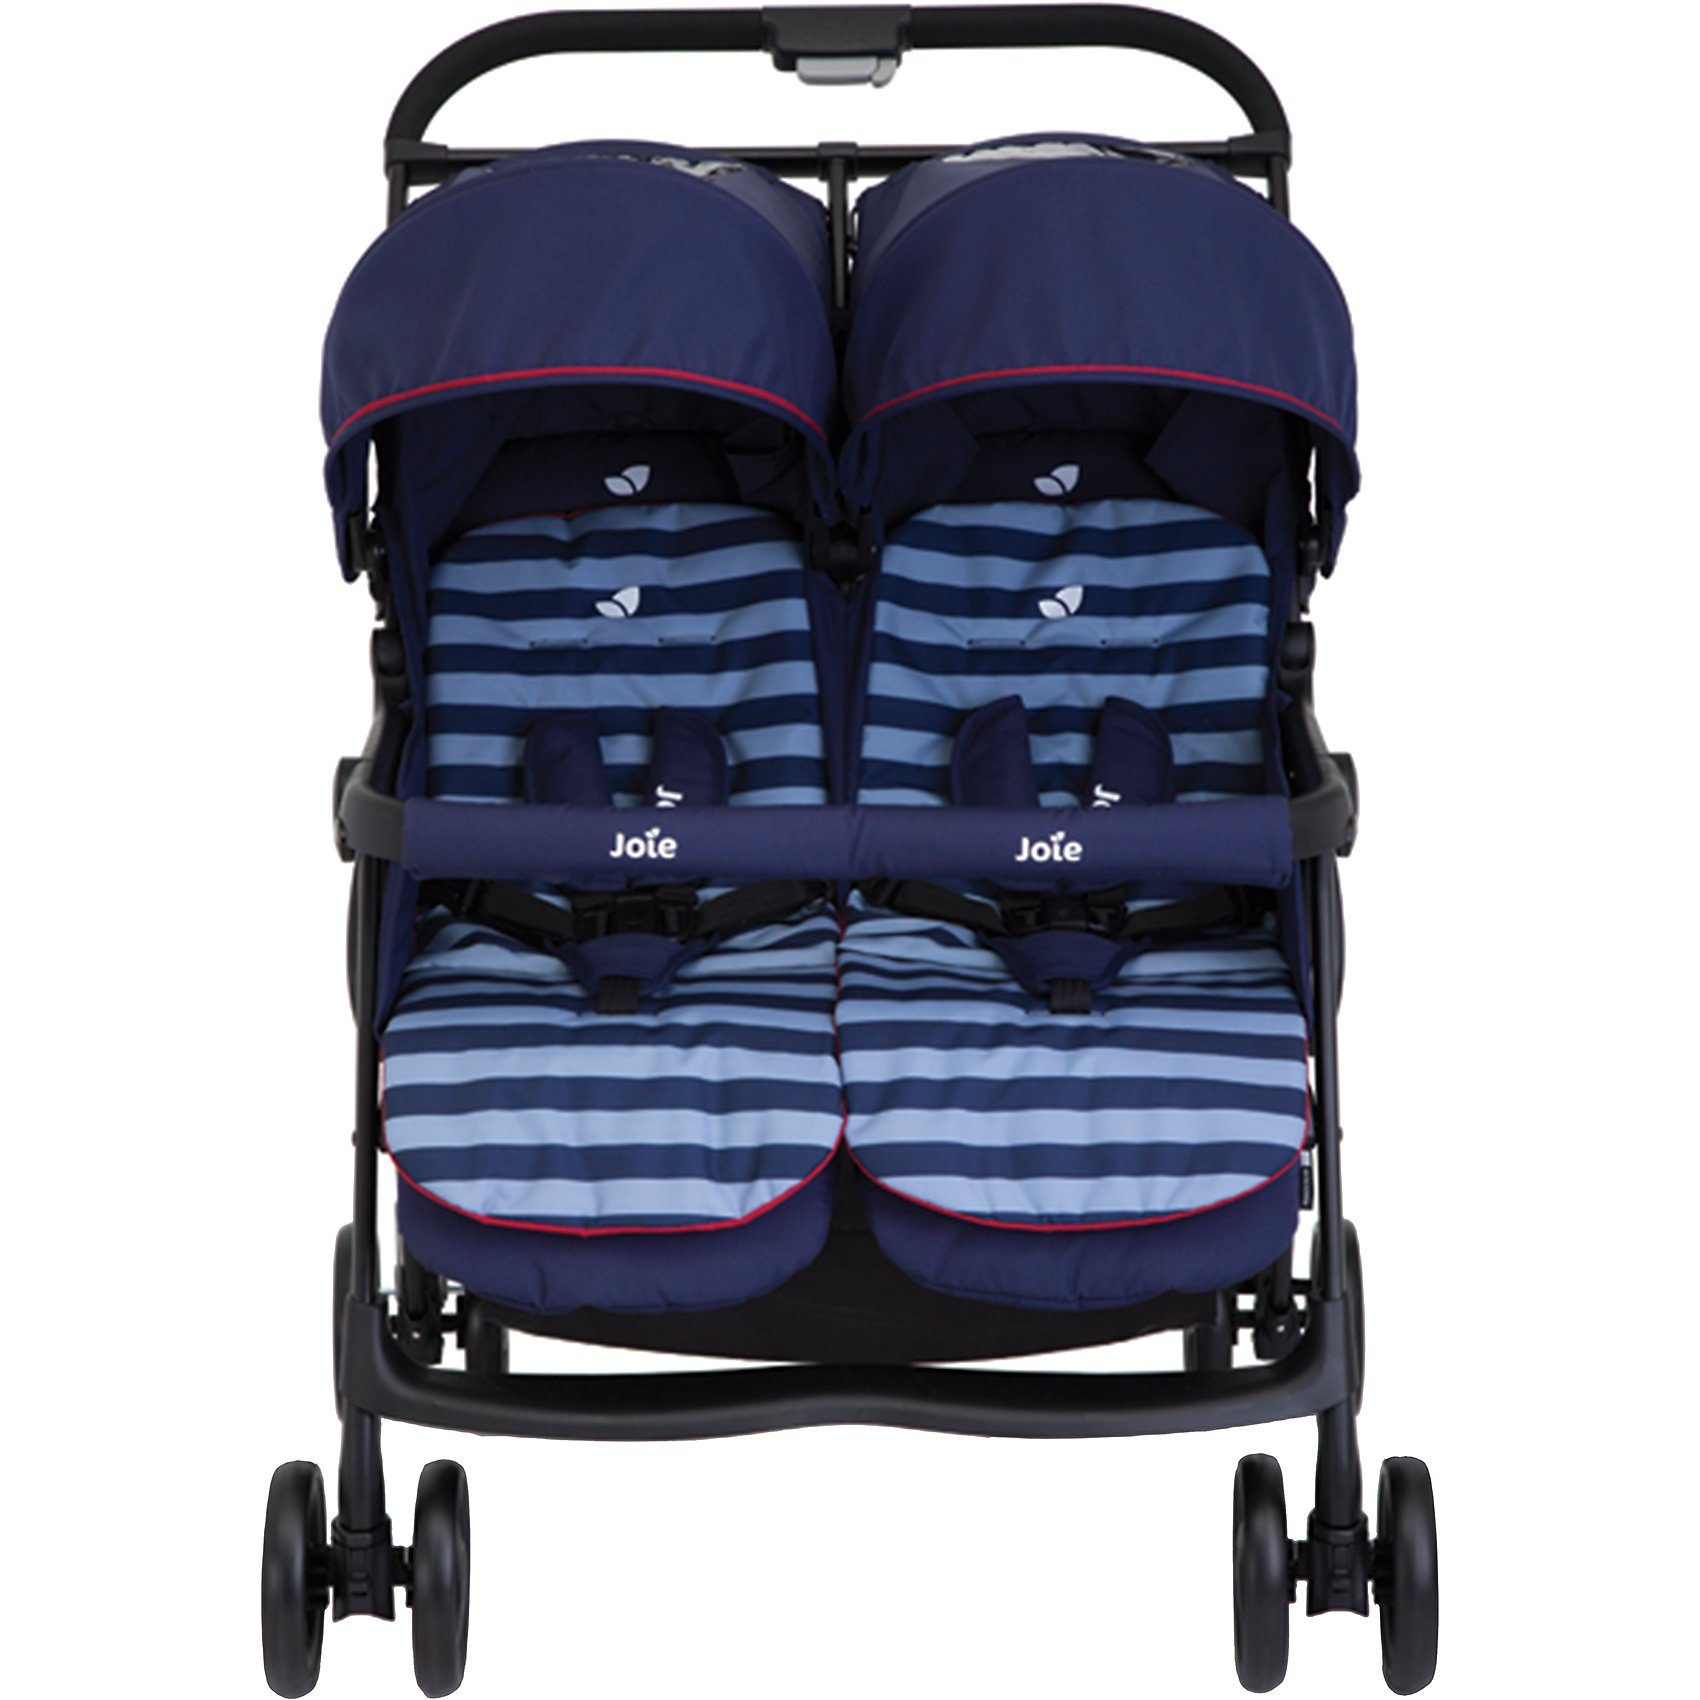 Joie Zwillingsbuggy AireTwin, Nautical Navy